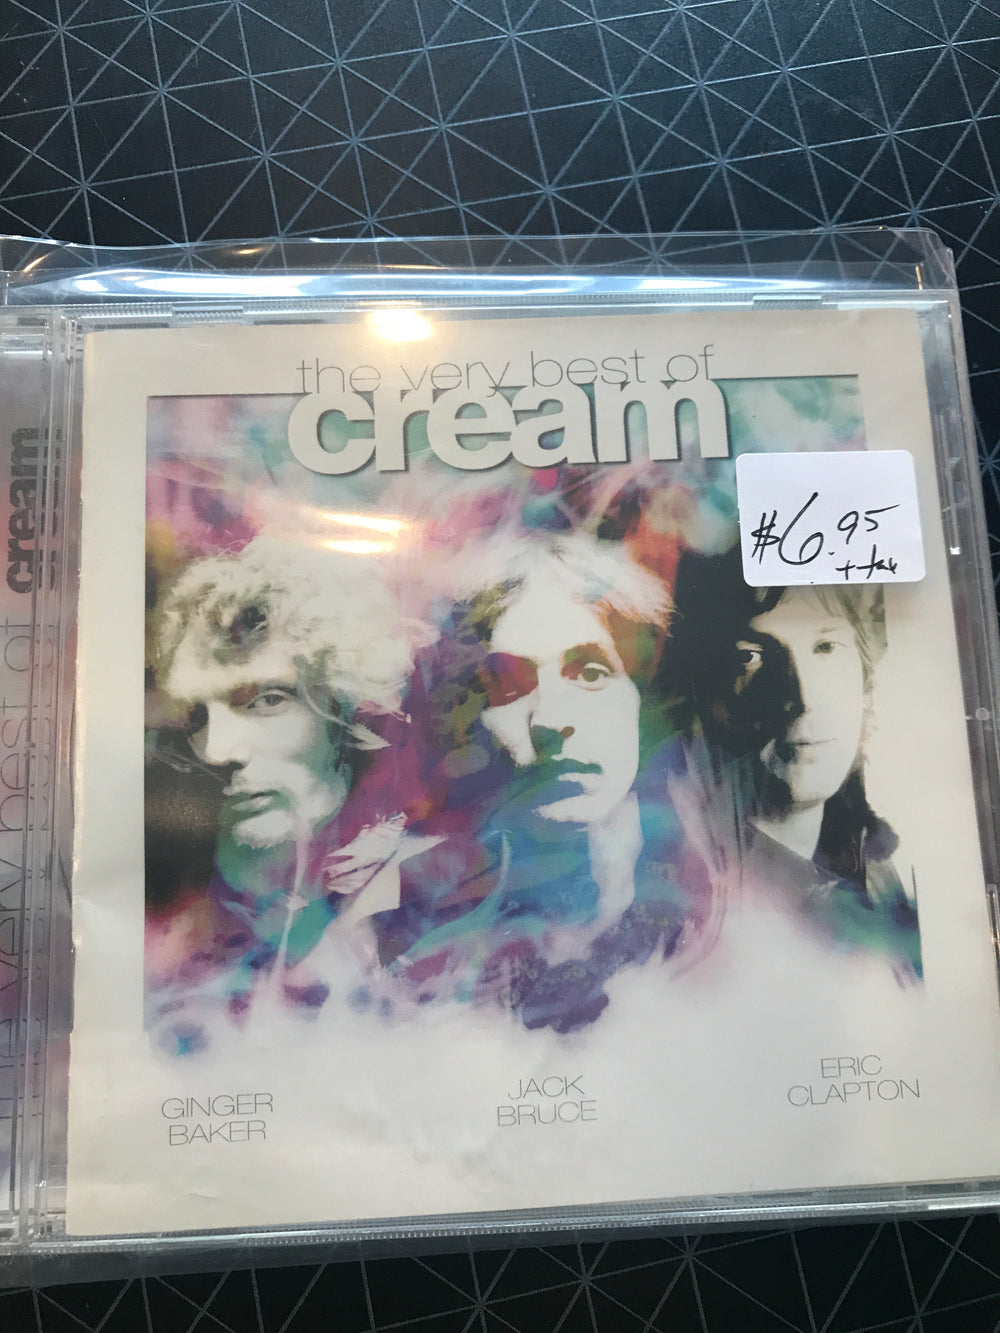 Cream - The Very Best Of - Used CD